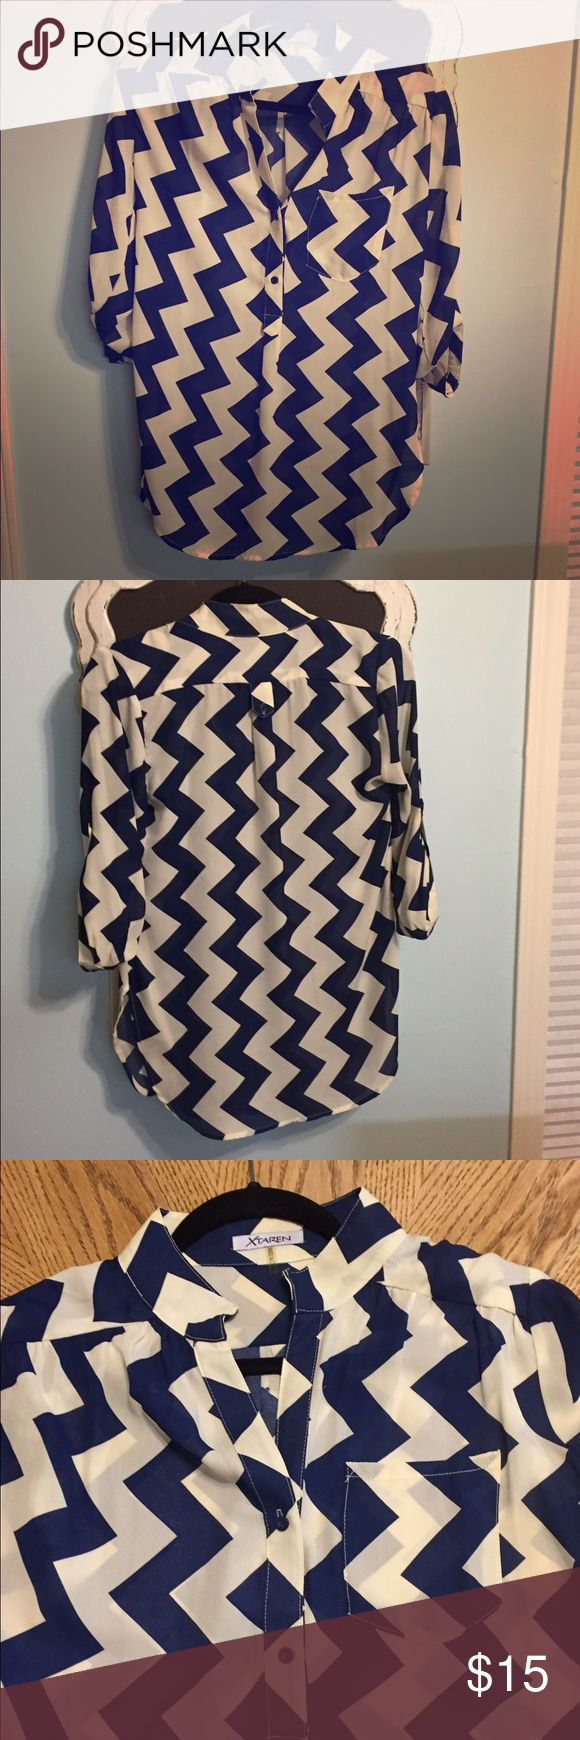 Chevron blouse Blue and off white Chevron blouse with quarter length sleeves, sheer, 100% polyester, great condition from smoke free home Xtaren Tops Blouses